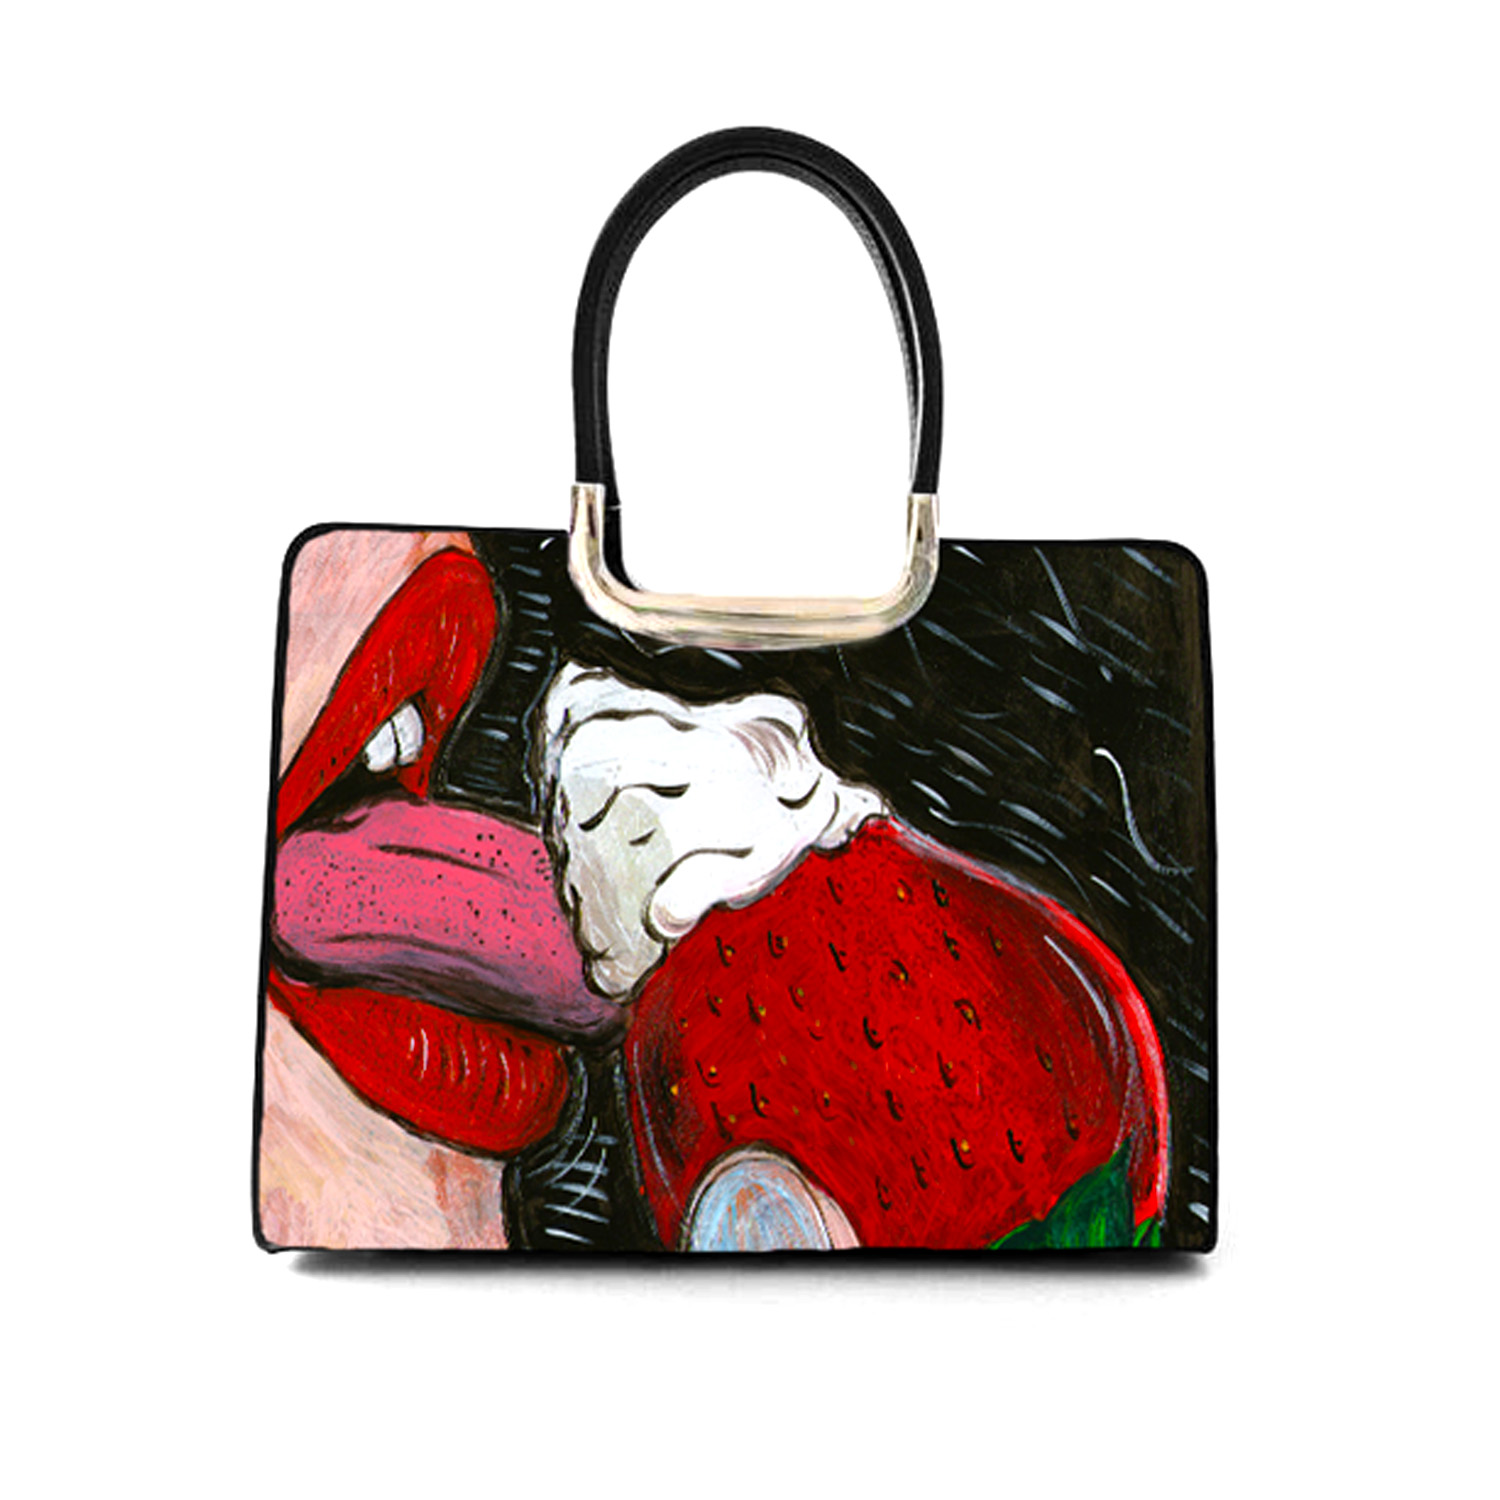 Hand-painted bag - Gluttony